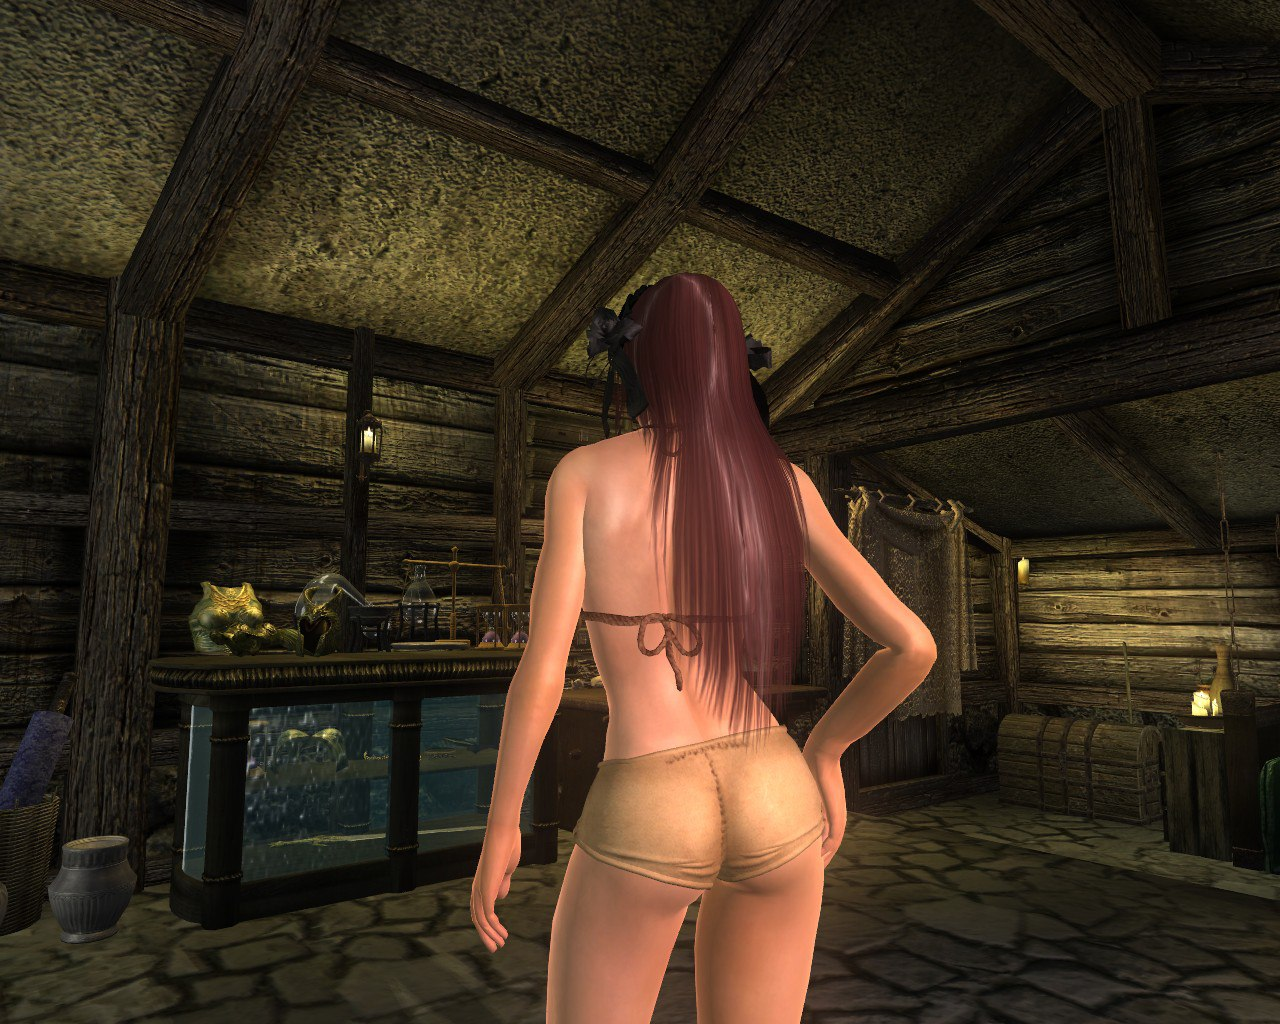 Oblivion nude mod for patches